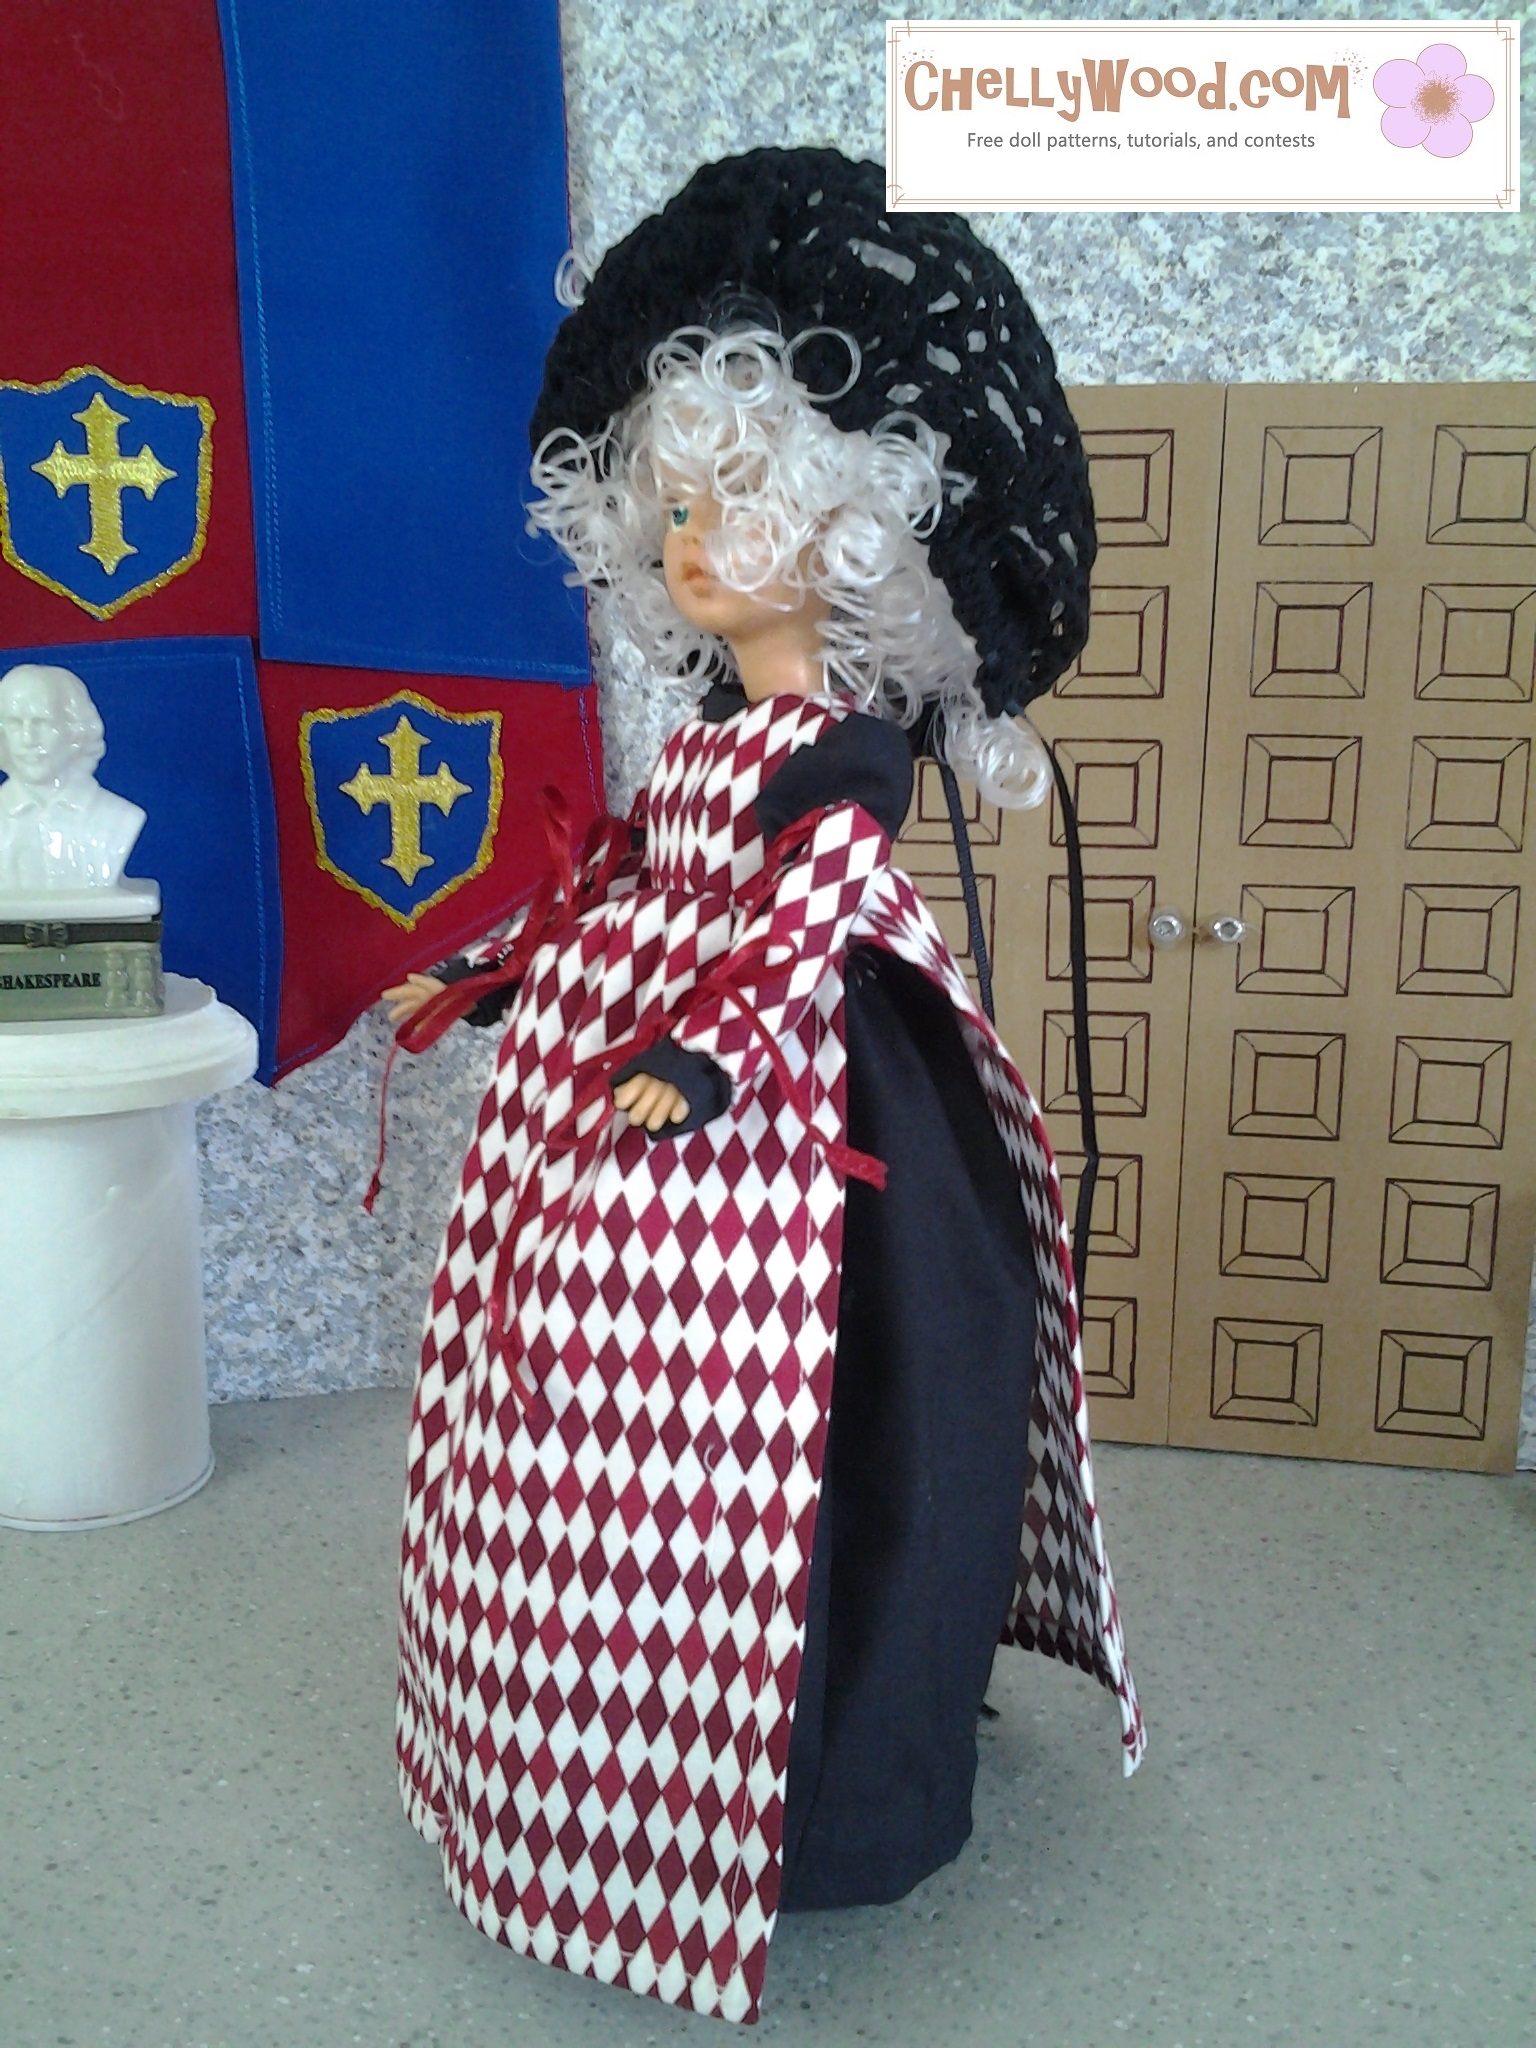 This is an image of a vintage Tammy doll (produced by Ideal Toy Corp in the 1960's) wearing a handmade ball gown, snood, pinafore, and detached sleeves in a renaissance style. ChellyWood.com offers a free PDF sewing pattern for making these doll clothes to fit the Ideal Toy Corporation Tammy Dolls.